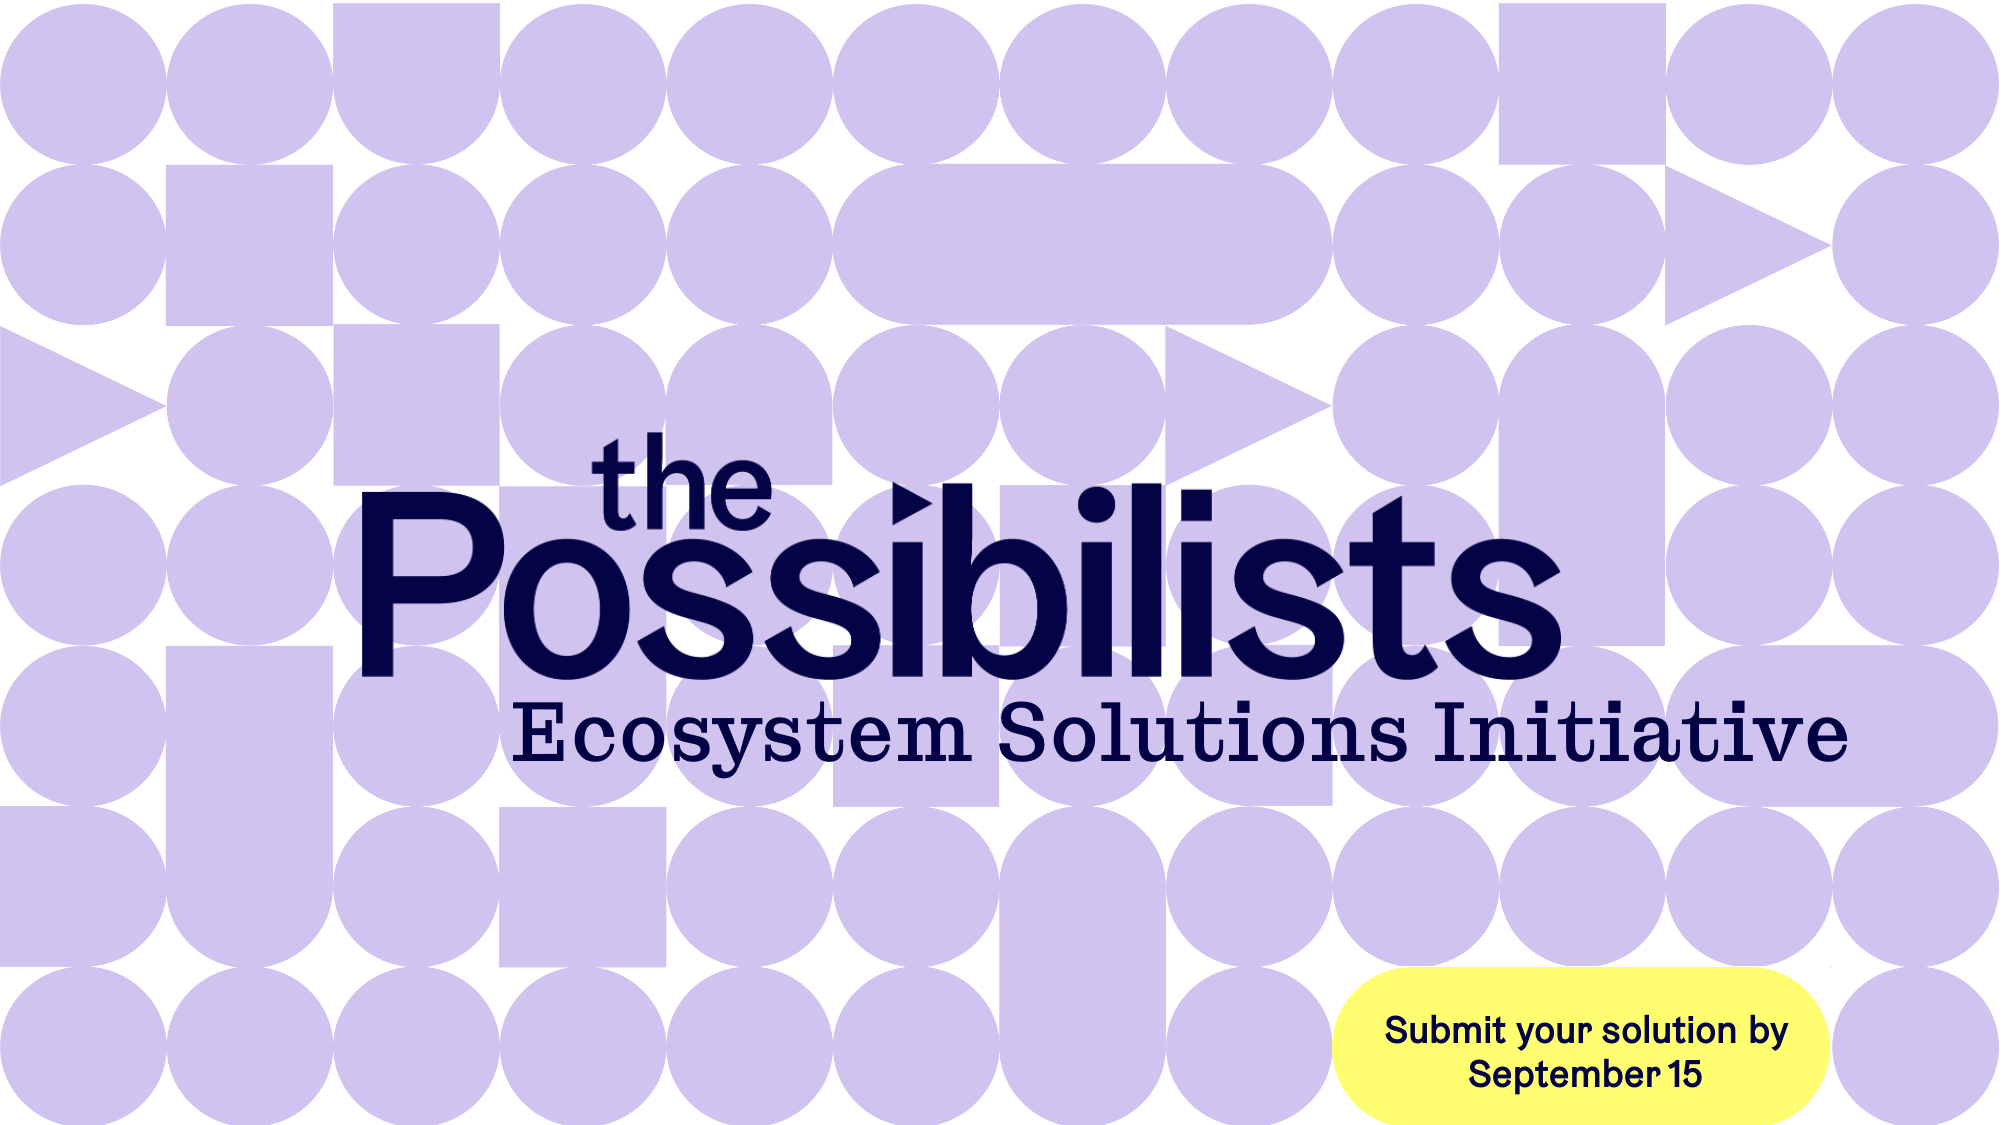 The Possibilists